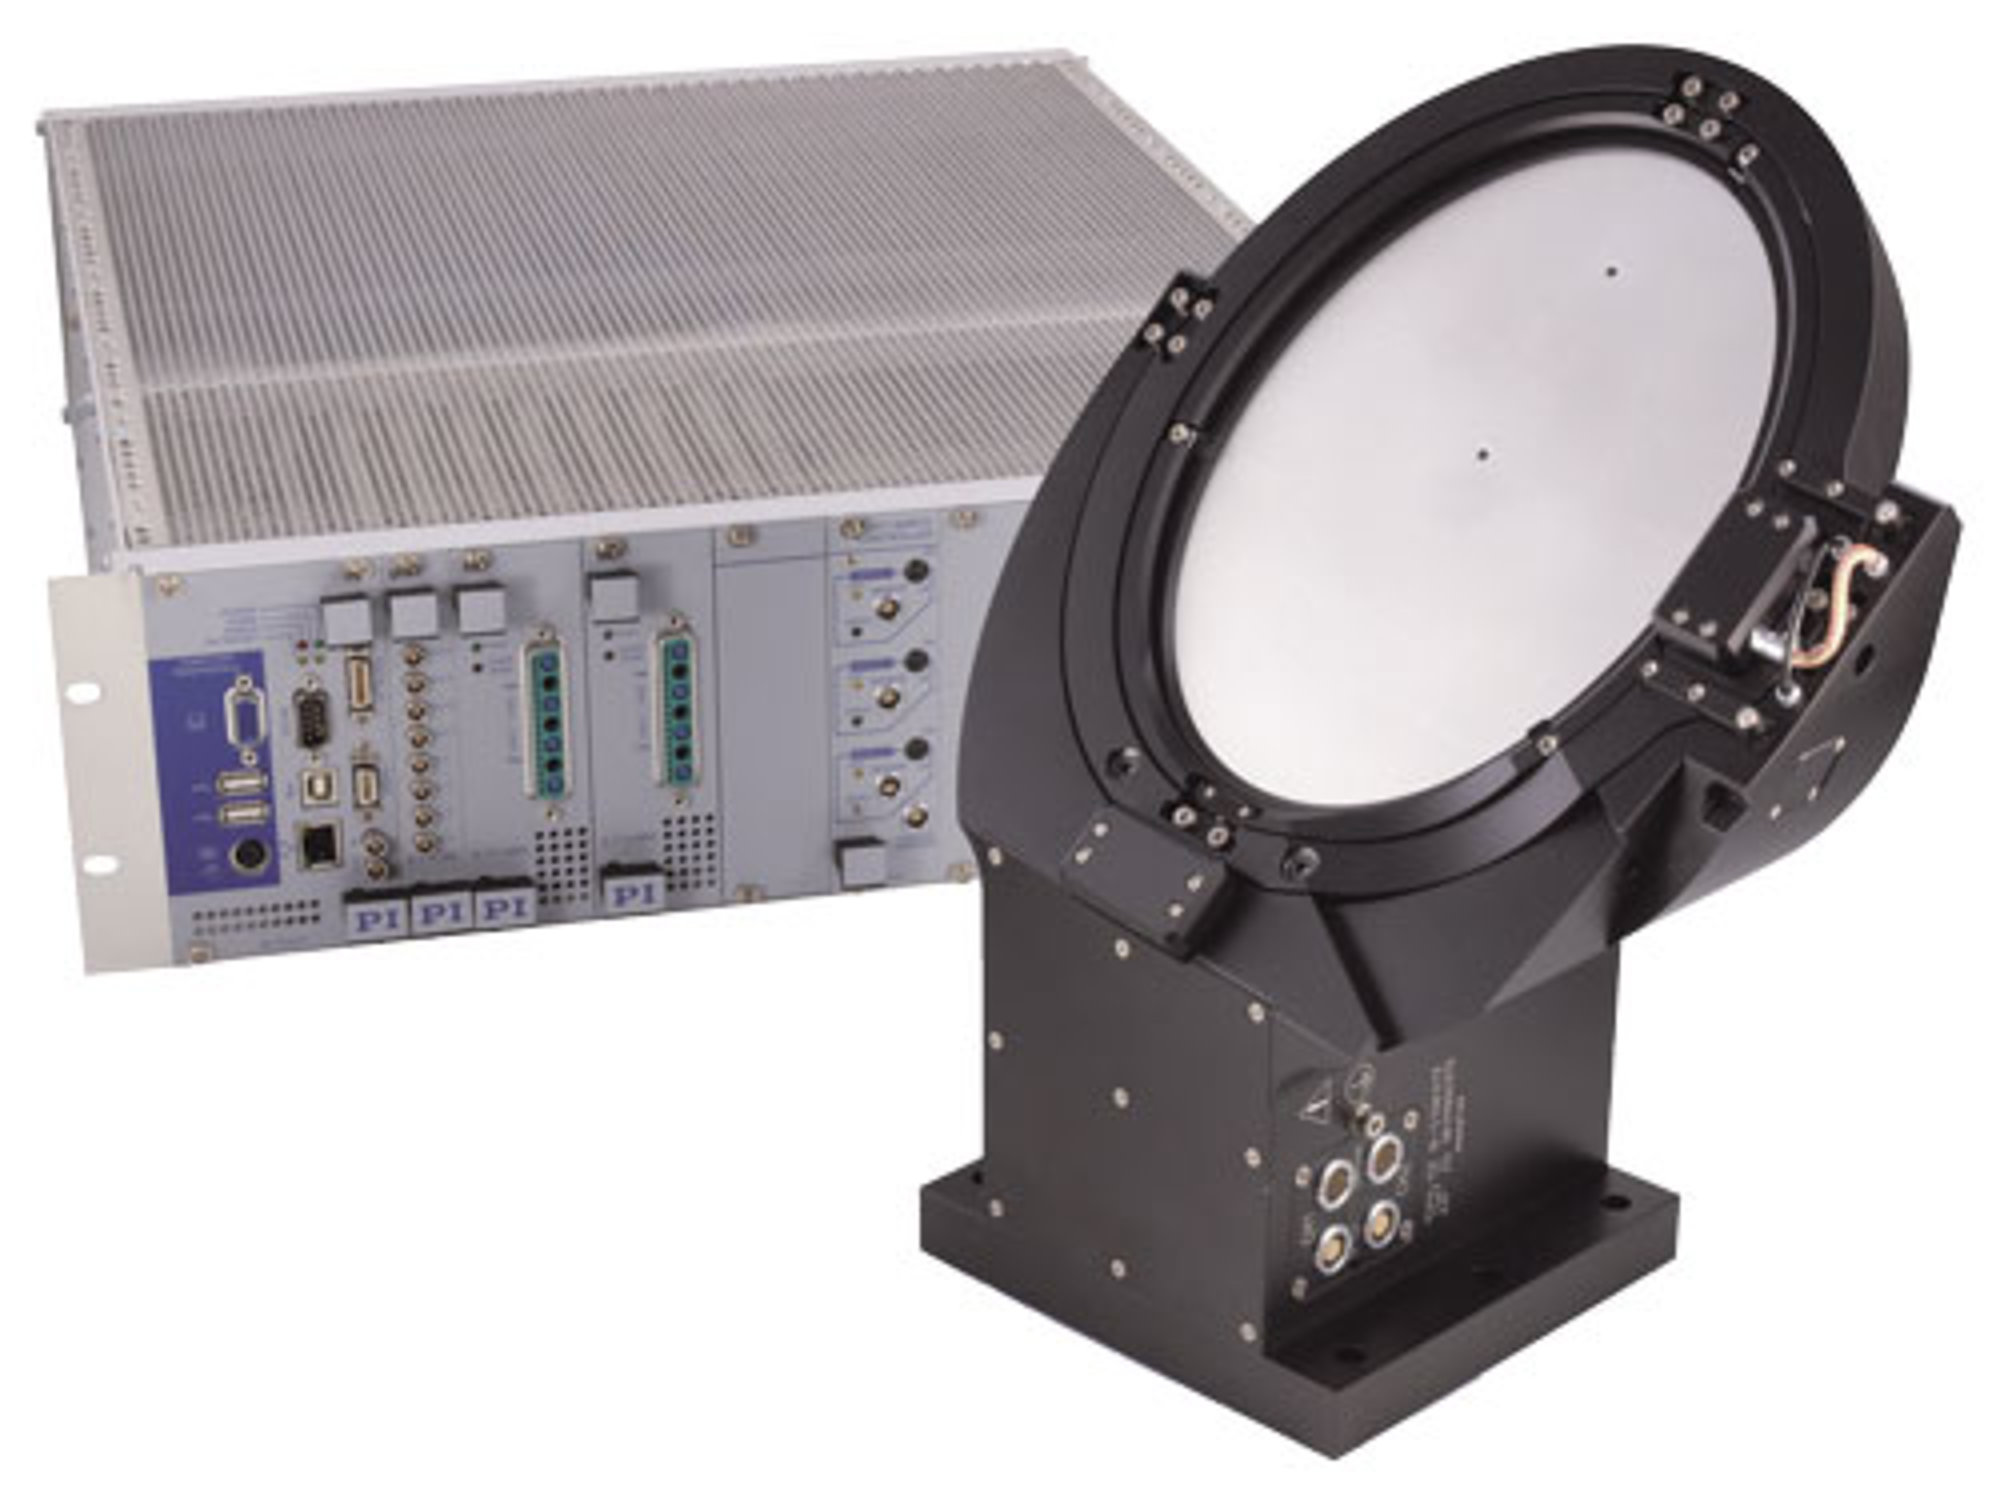 Ultra Stable Mirror Mounts For LINC NIRVANA High Resolution Imager